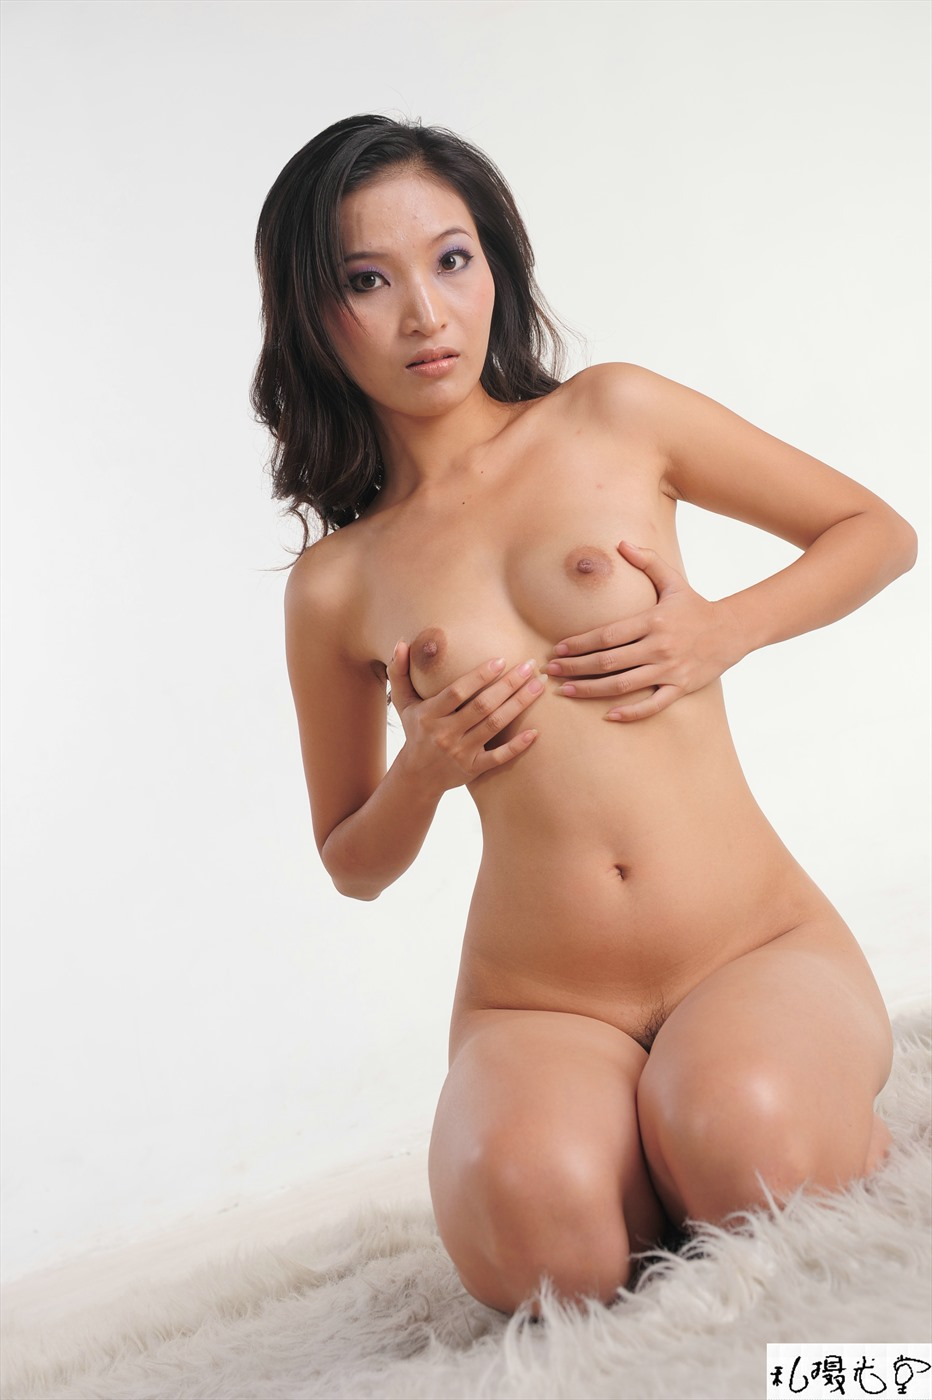 Free Erotic Nude Model Pussy Picture